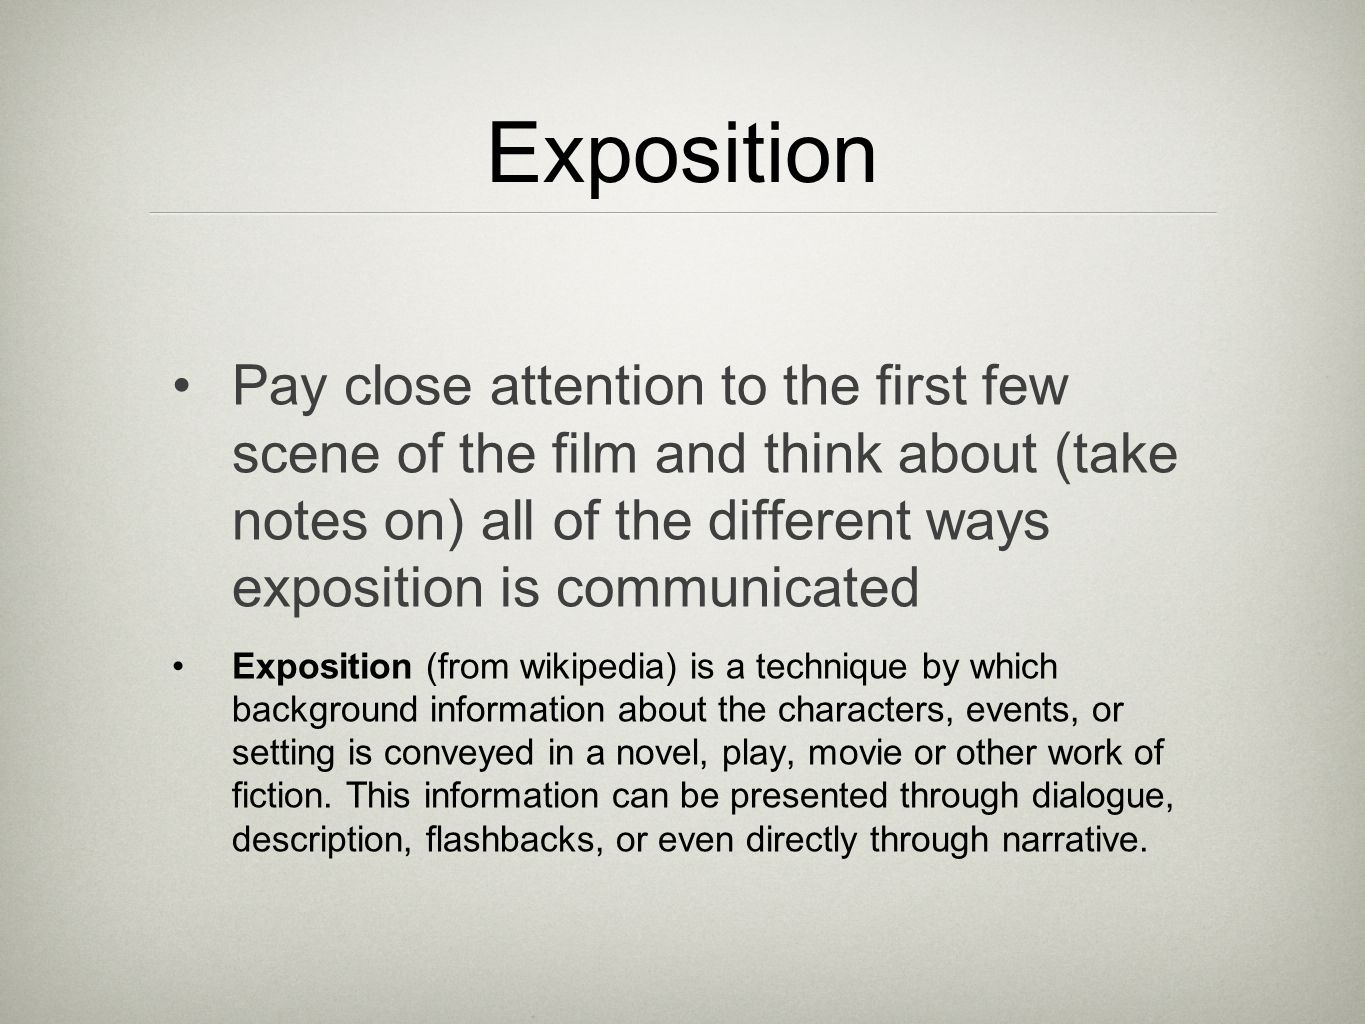 Exposition Pay close attention to the first few scene of the film and think about (take notes on) all of the different ways exposition is communicated